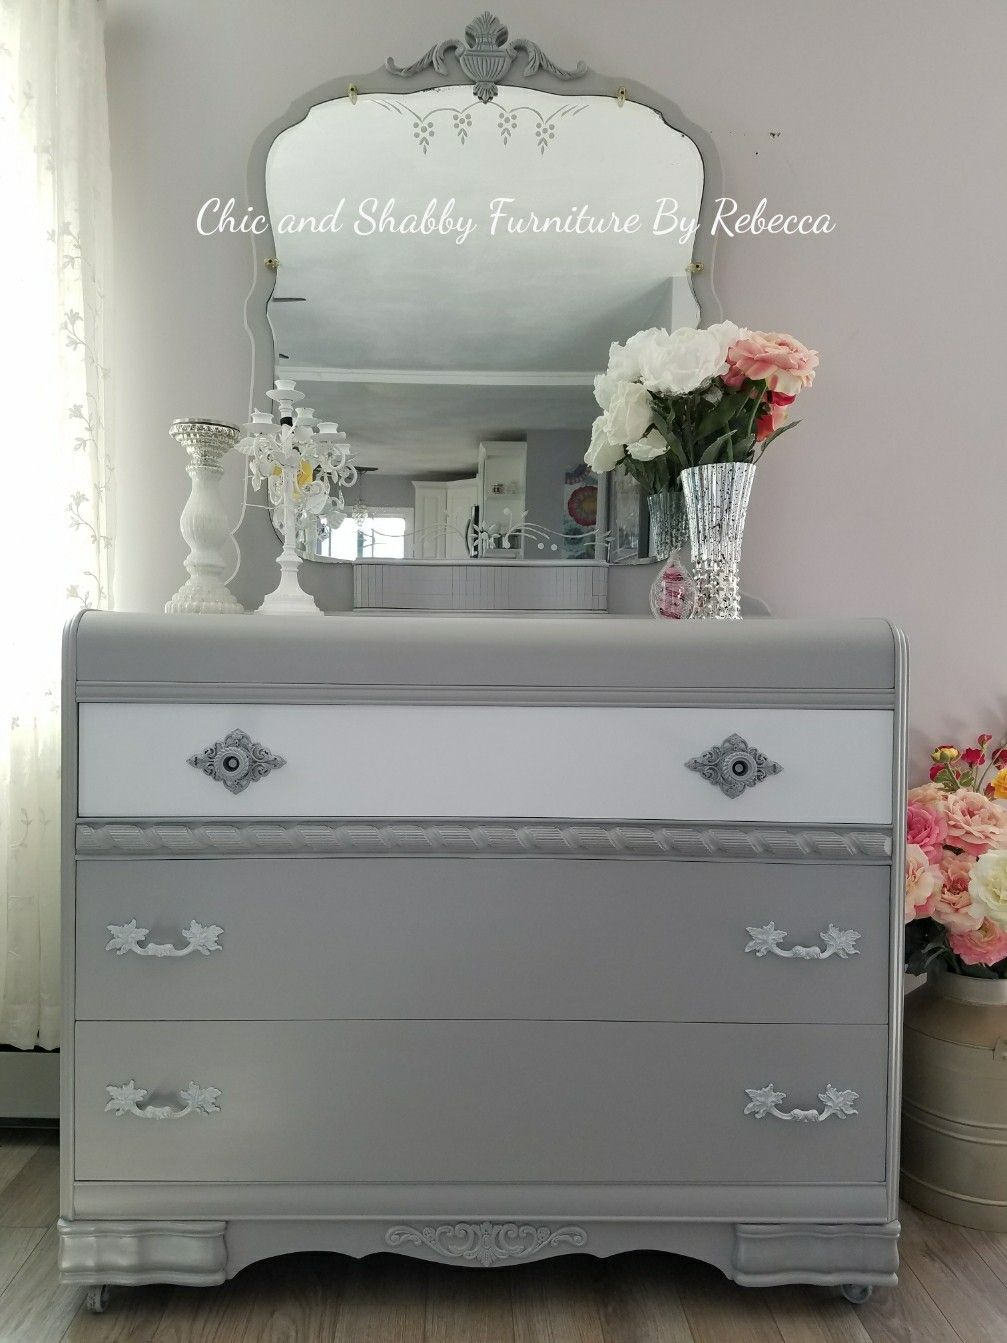 Mid Century Waterfall 3 Drawer Dresser And Mirror Dovetail Drawers And On Casters Done In Gray W Shabby Furniture Waterfall Furniture Furniture Makeover Diy